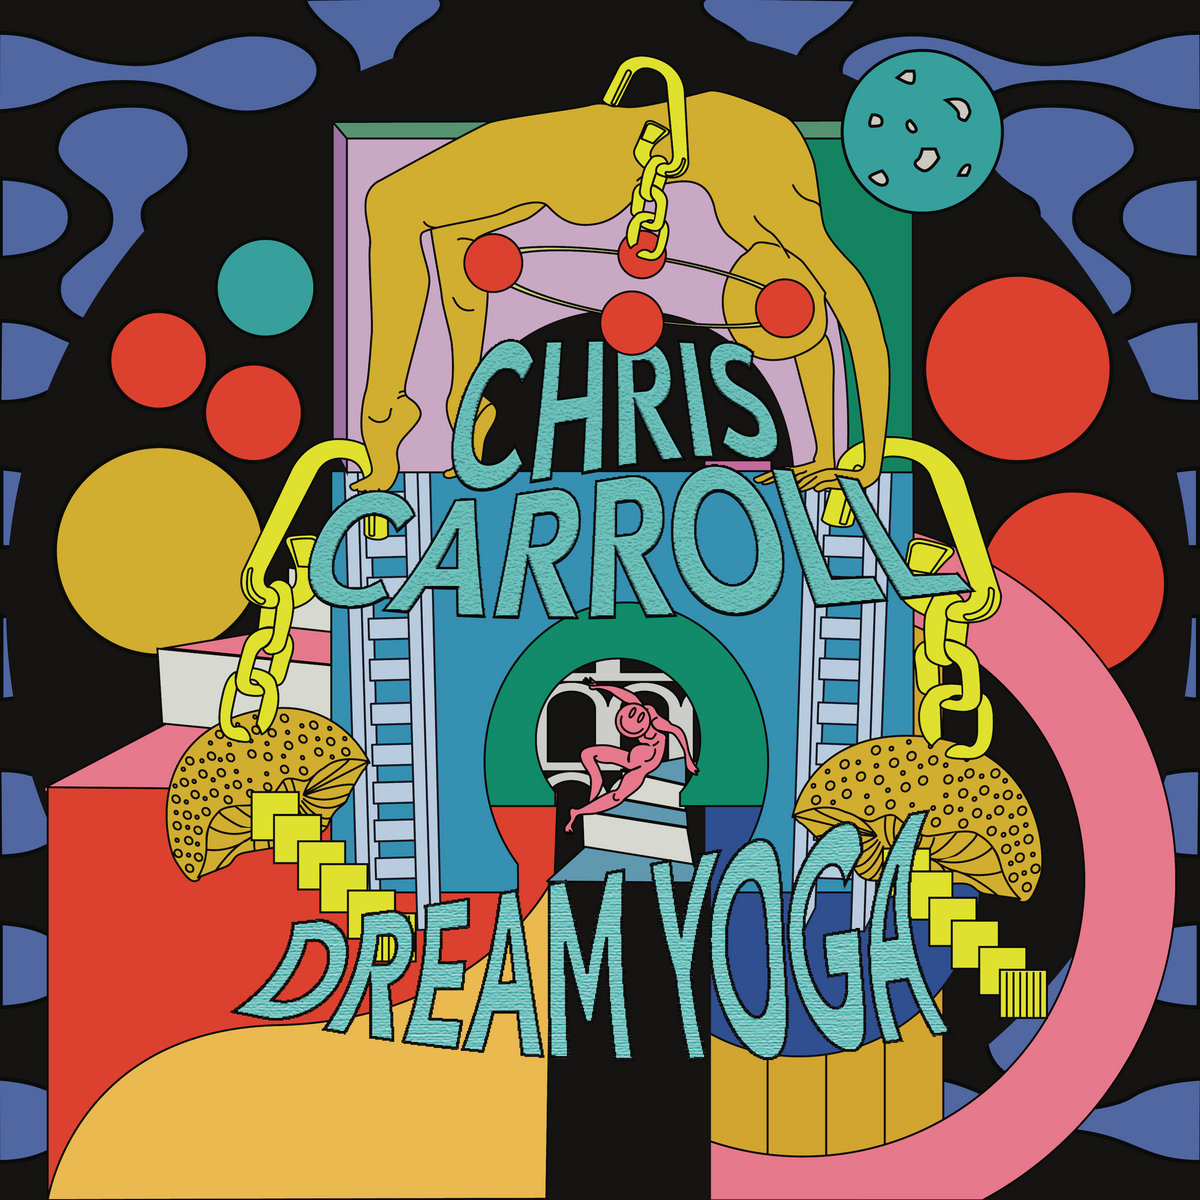 Chris Carroll-'Dream Yoga' Album. 2020. Self-Released.